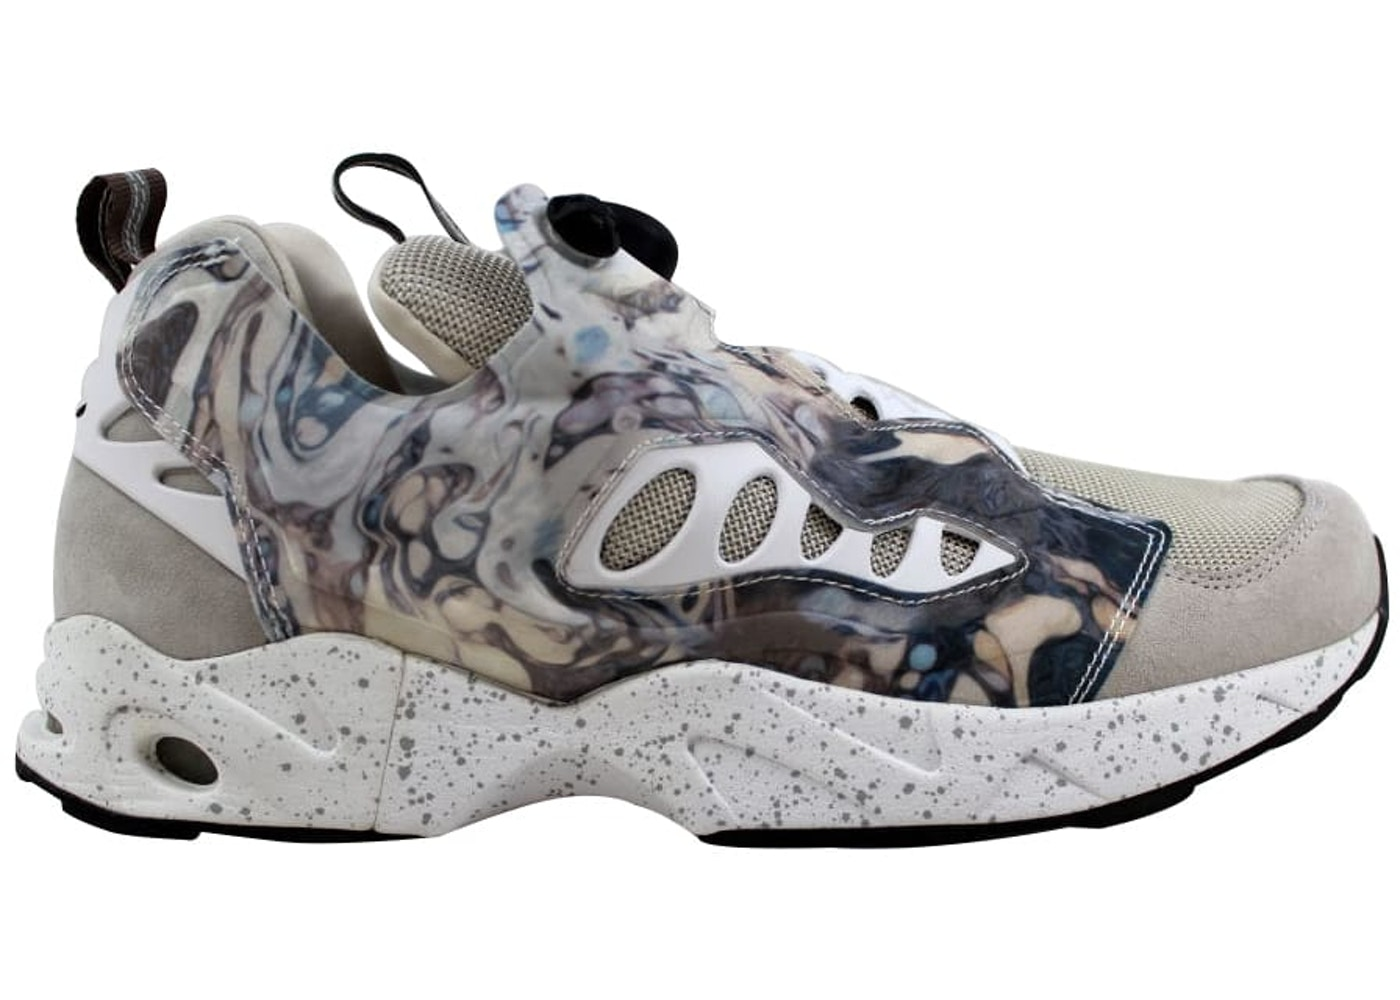 f5c4f5a3efb063 Reebok Size 13 Shoes - Lowest Ask